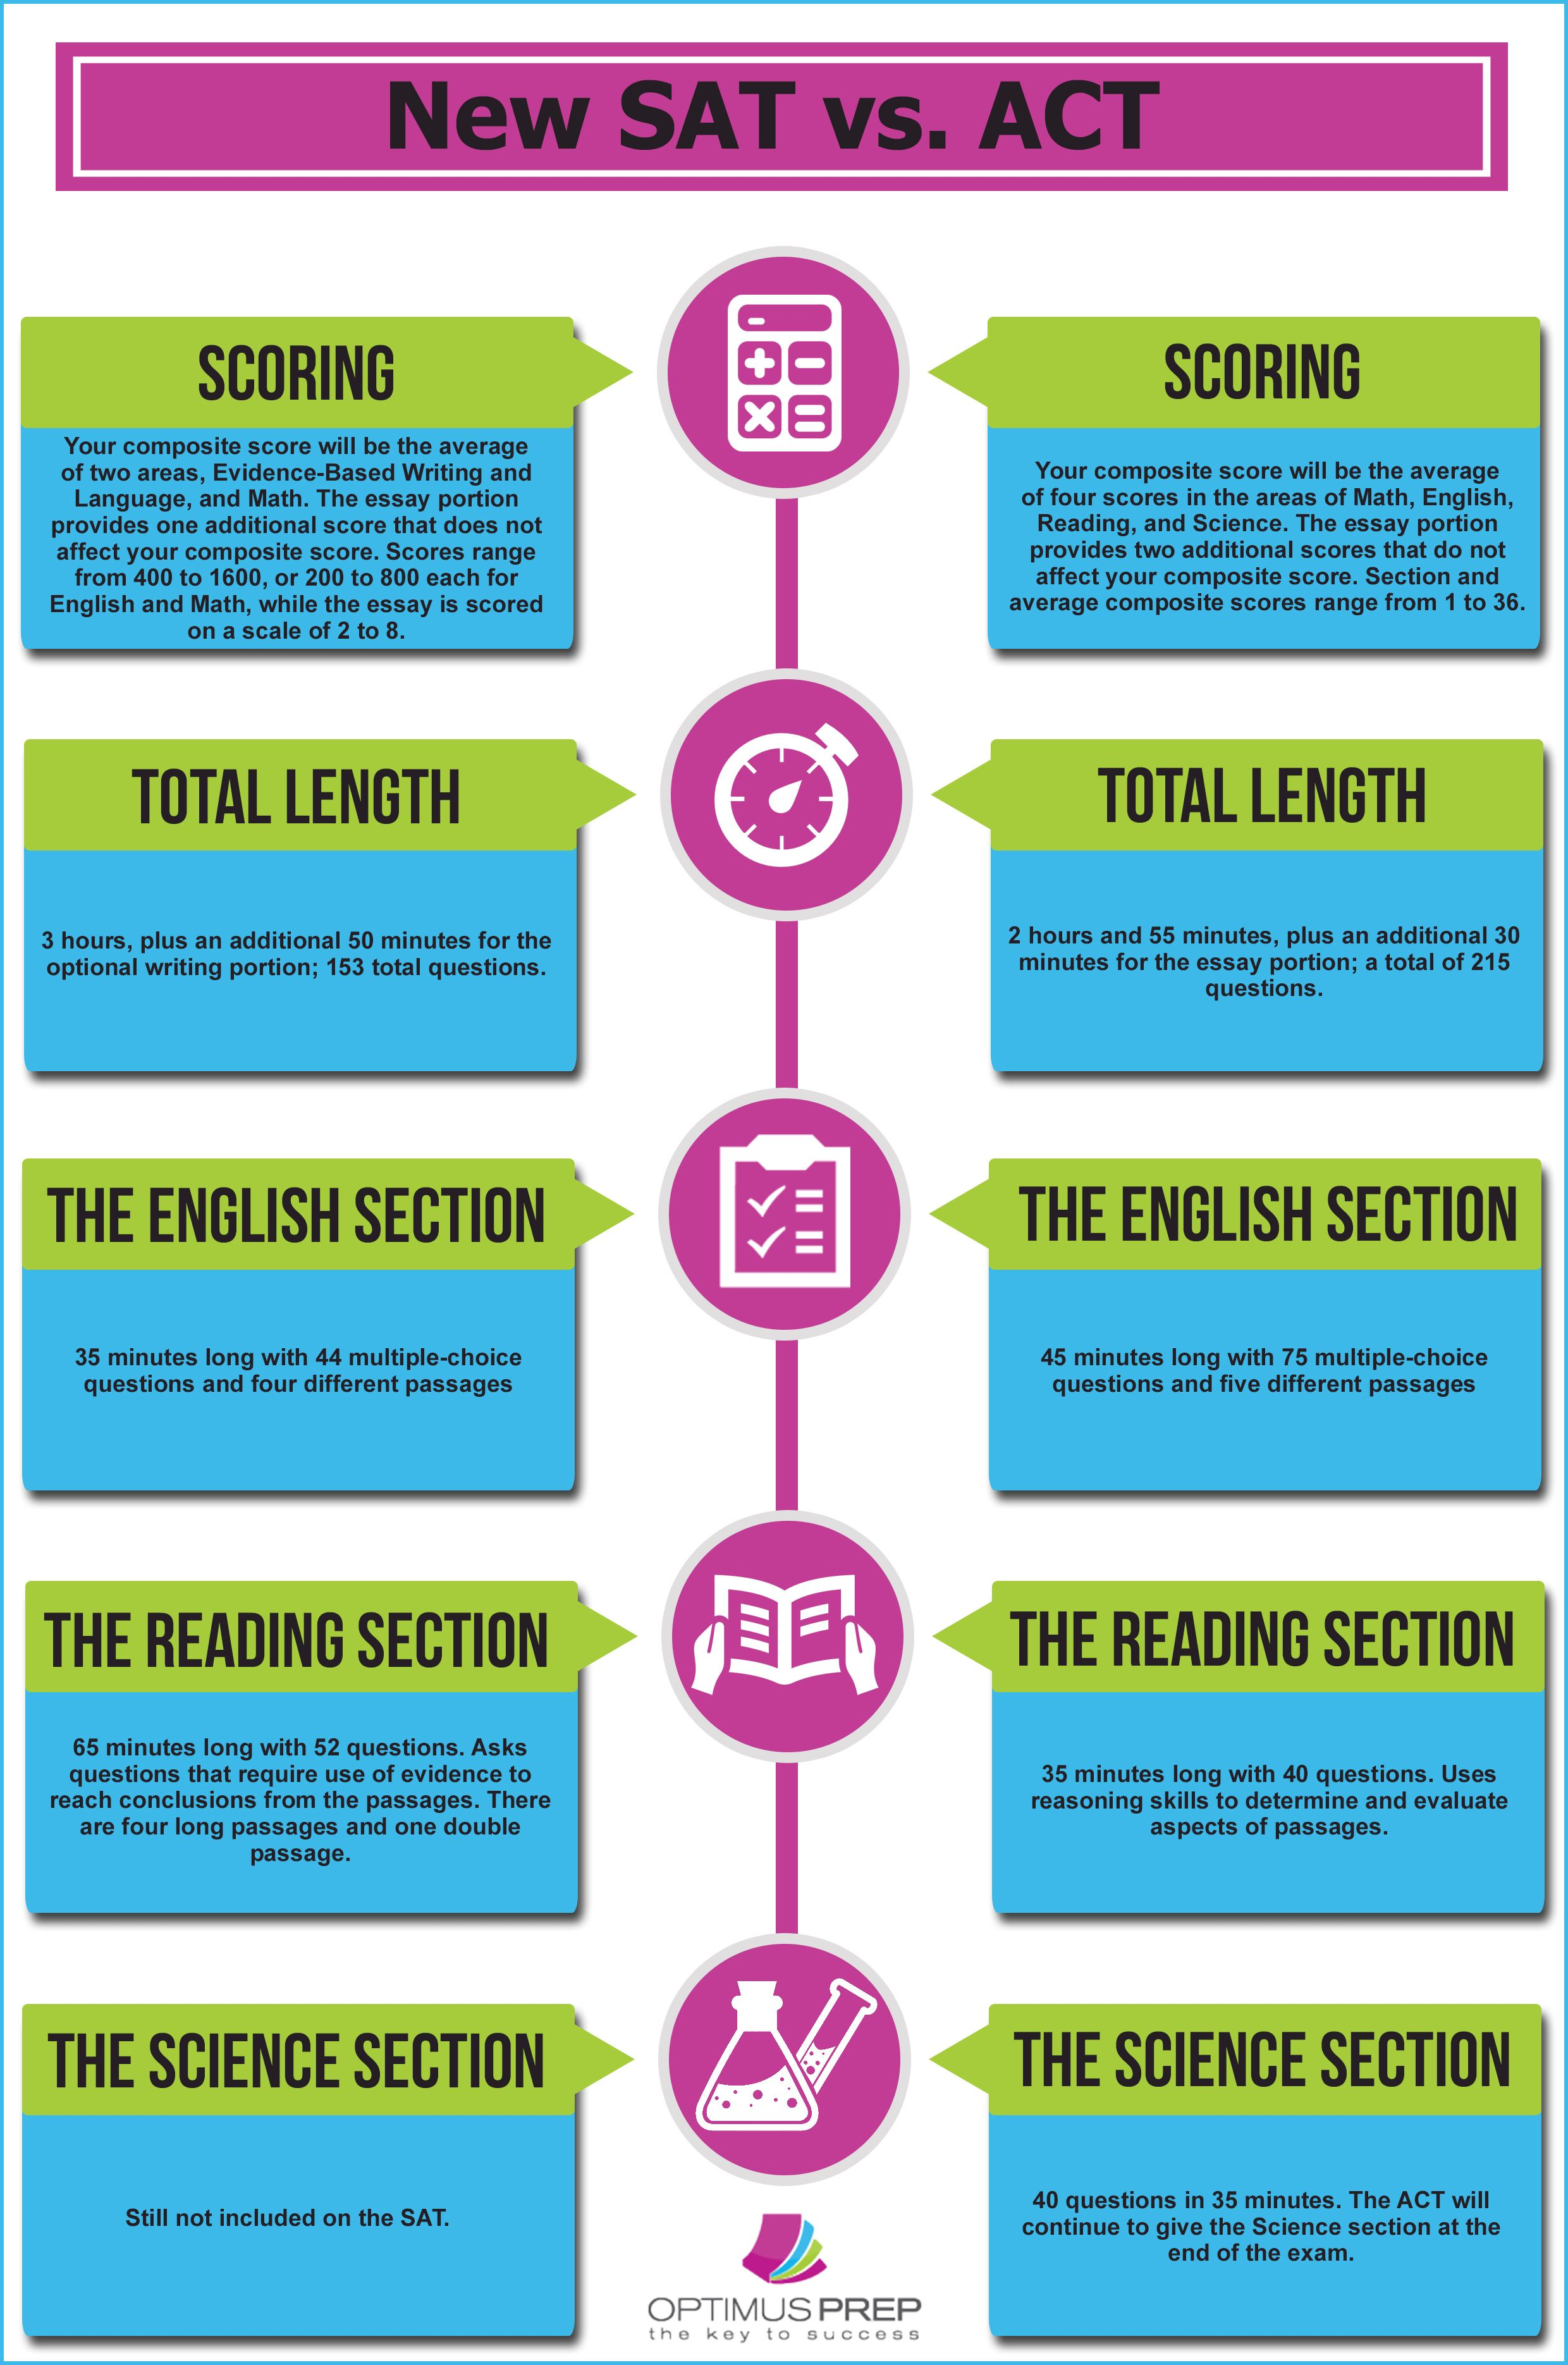 This infographic compares the new SAT test format vs. the ACT ...